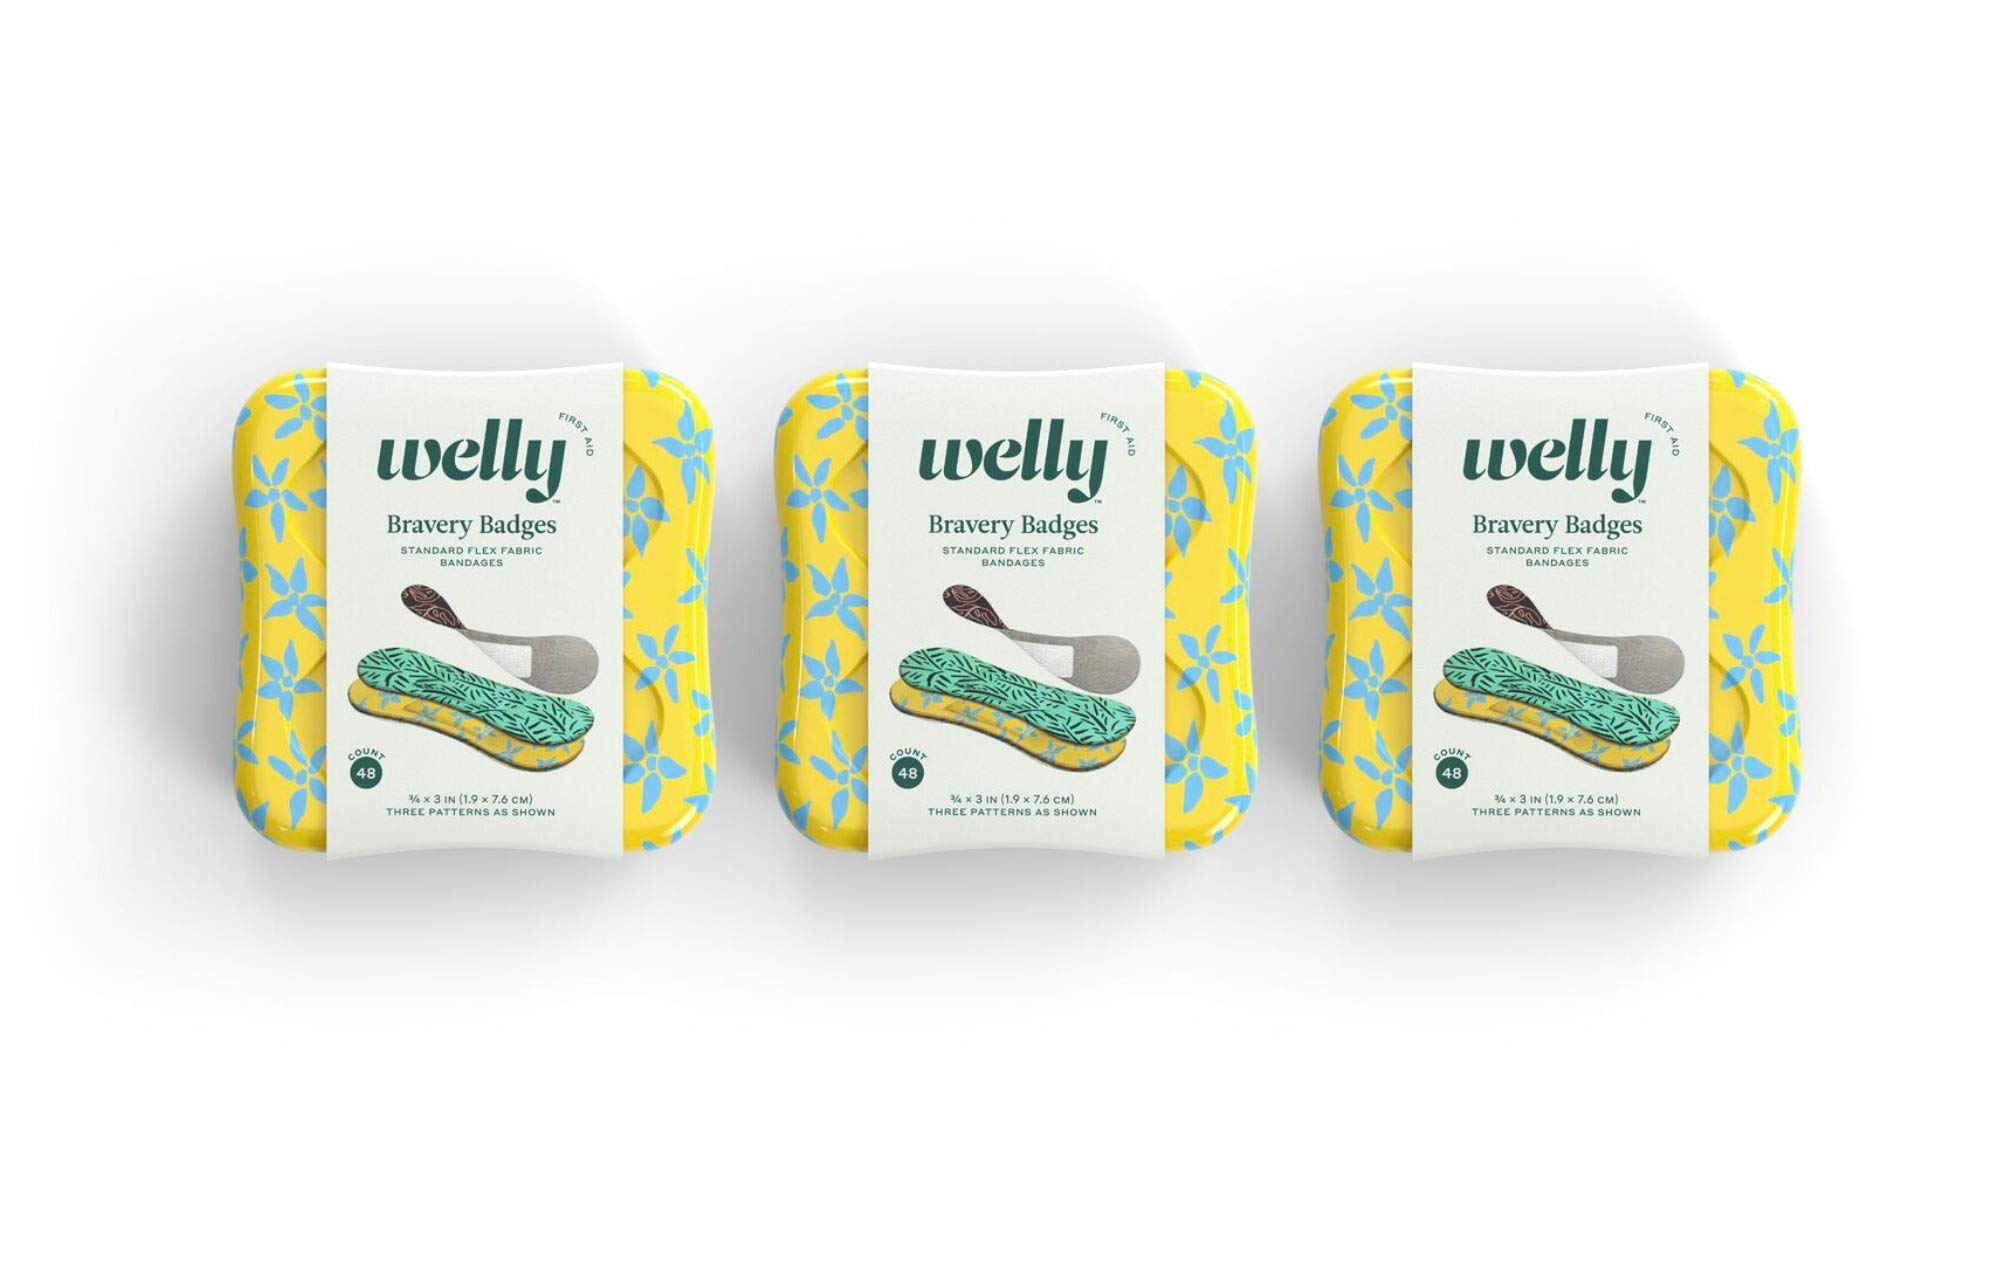 Welly Bandages - Bravery Badges, Flexible Fabric, Adhesive, Standard Shape, Floral Patterns - 48 ct, 3 Pack